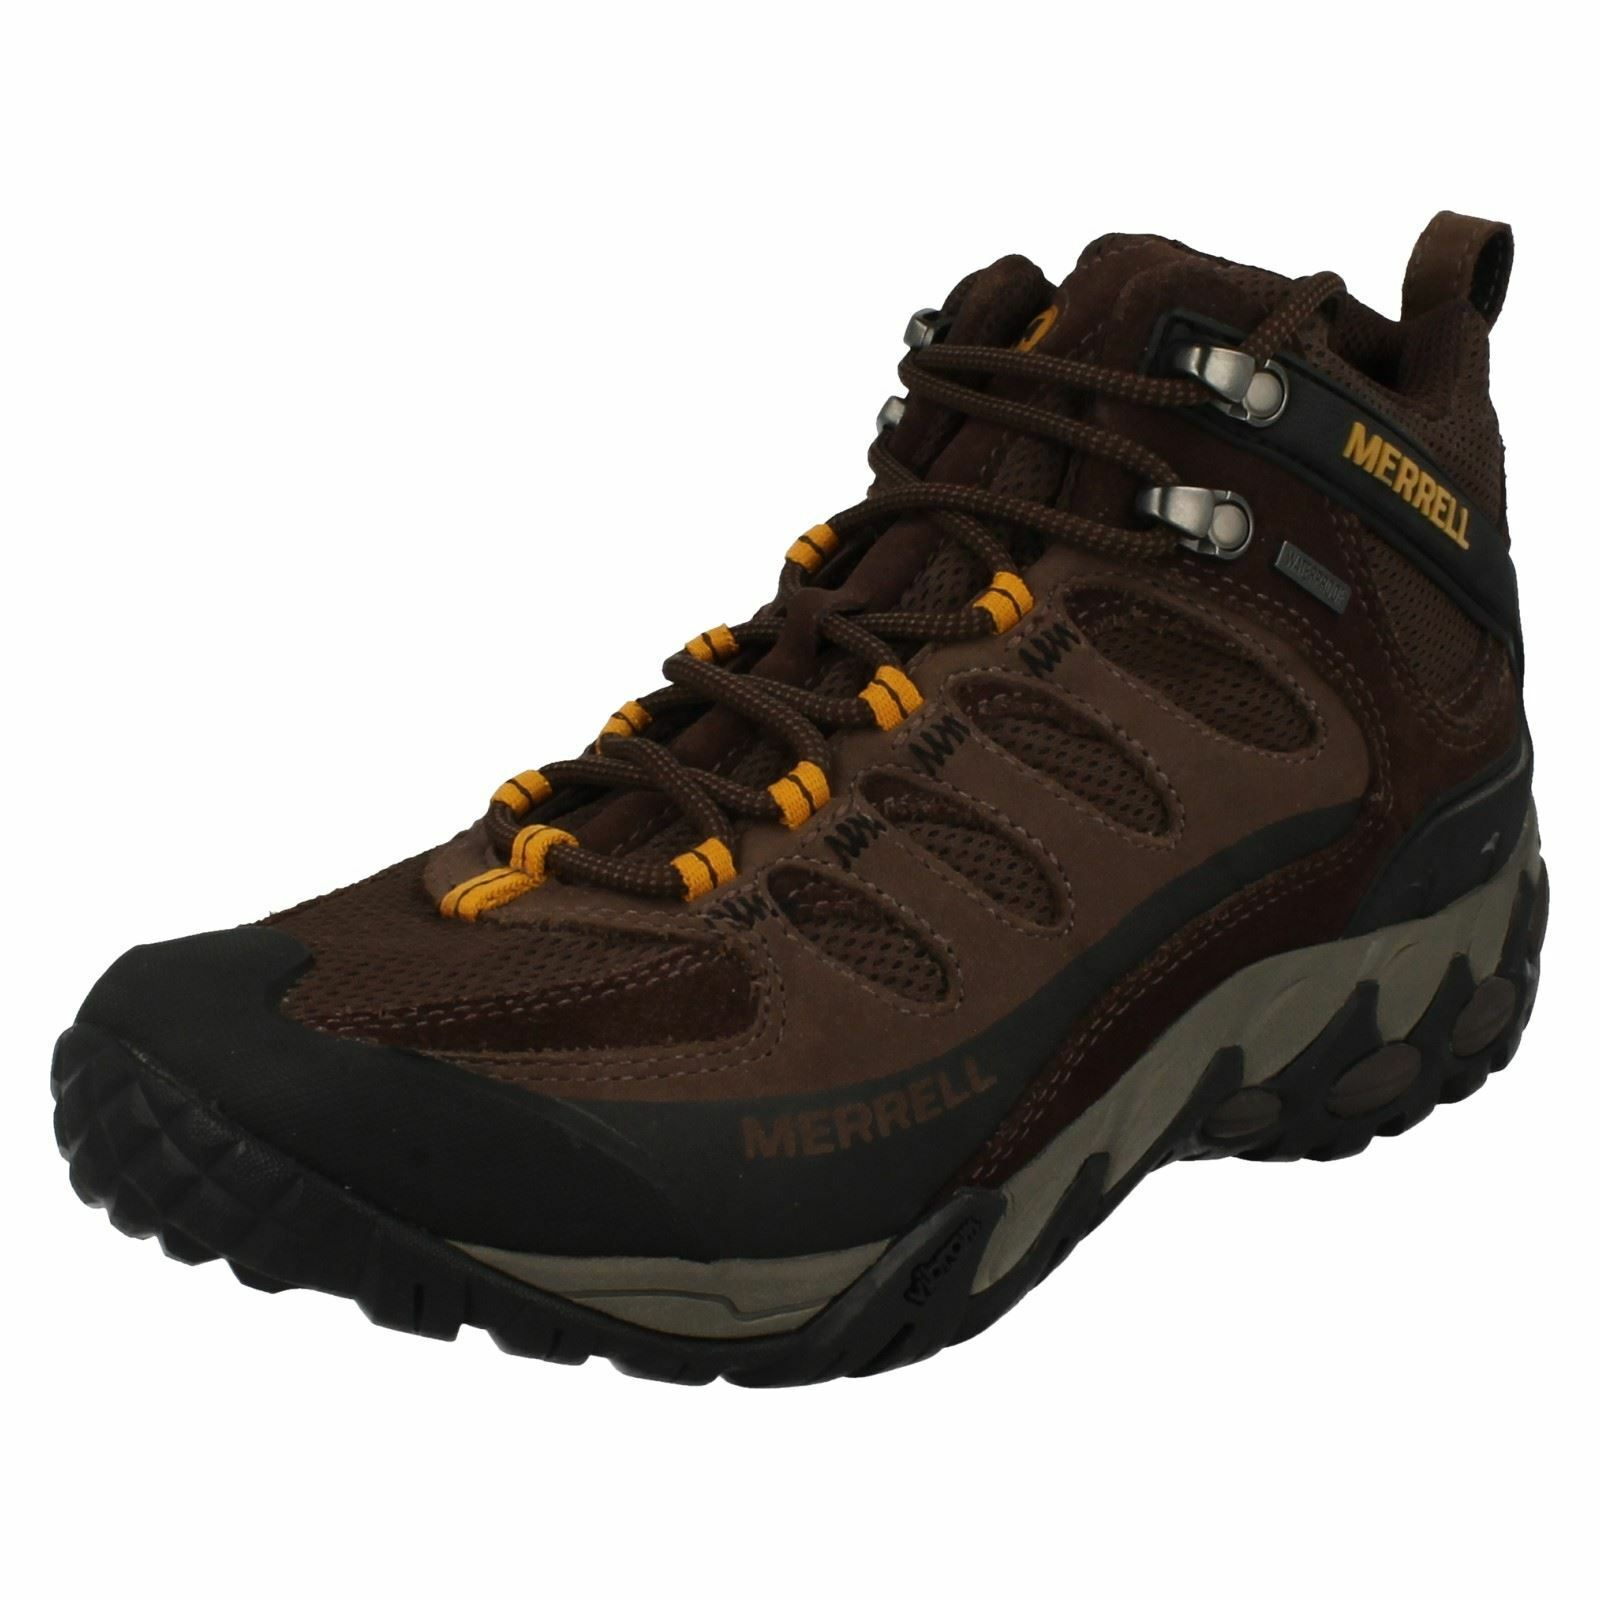 Mens Merrell Lace Up Walking Boots Refuge Core